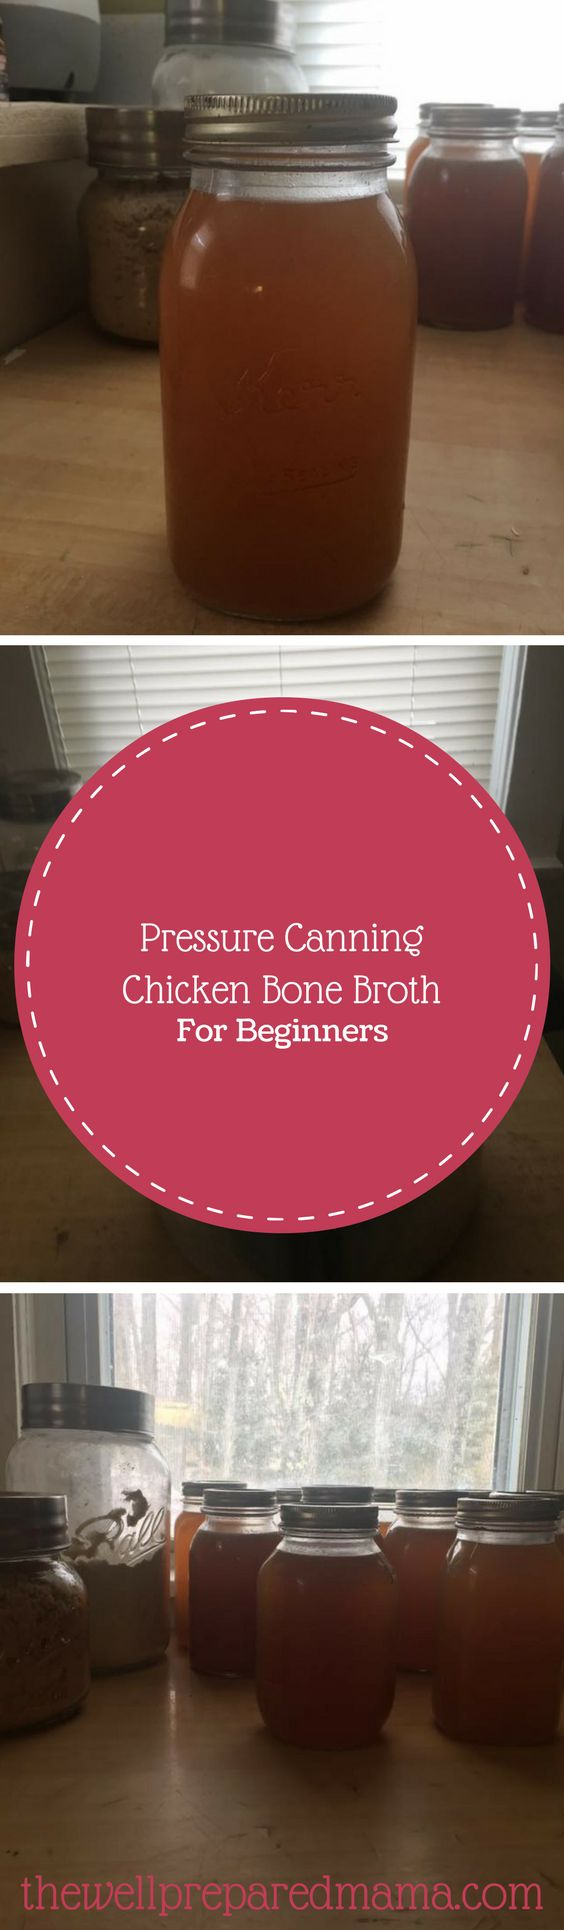 Pressure Canning Chicken Bone Broth For Beginners I made bone broth for the first time last year and although it wasn't a total disaster, I made a lot of mistakes. Thankfully, I learned from them and this year, the results were amazing! http://thewellpreparedmama.com/pressure-canning-chicken-bone-broth-for-beginners/?utm_campaign=coschedule&utm_source=pinterest&utm_medium=The%20Well-Prepared%20Mama&utm_content=Pressure%20Canning%20Chicken%20Bone%20Broth%20For%20Beginners